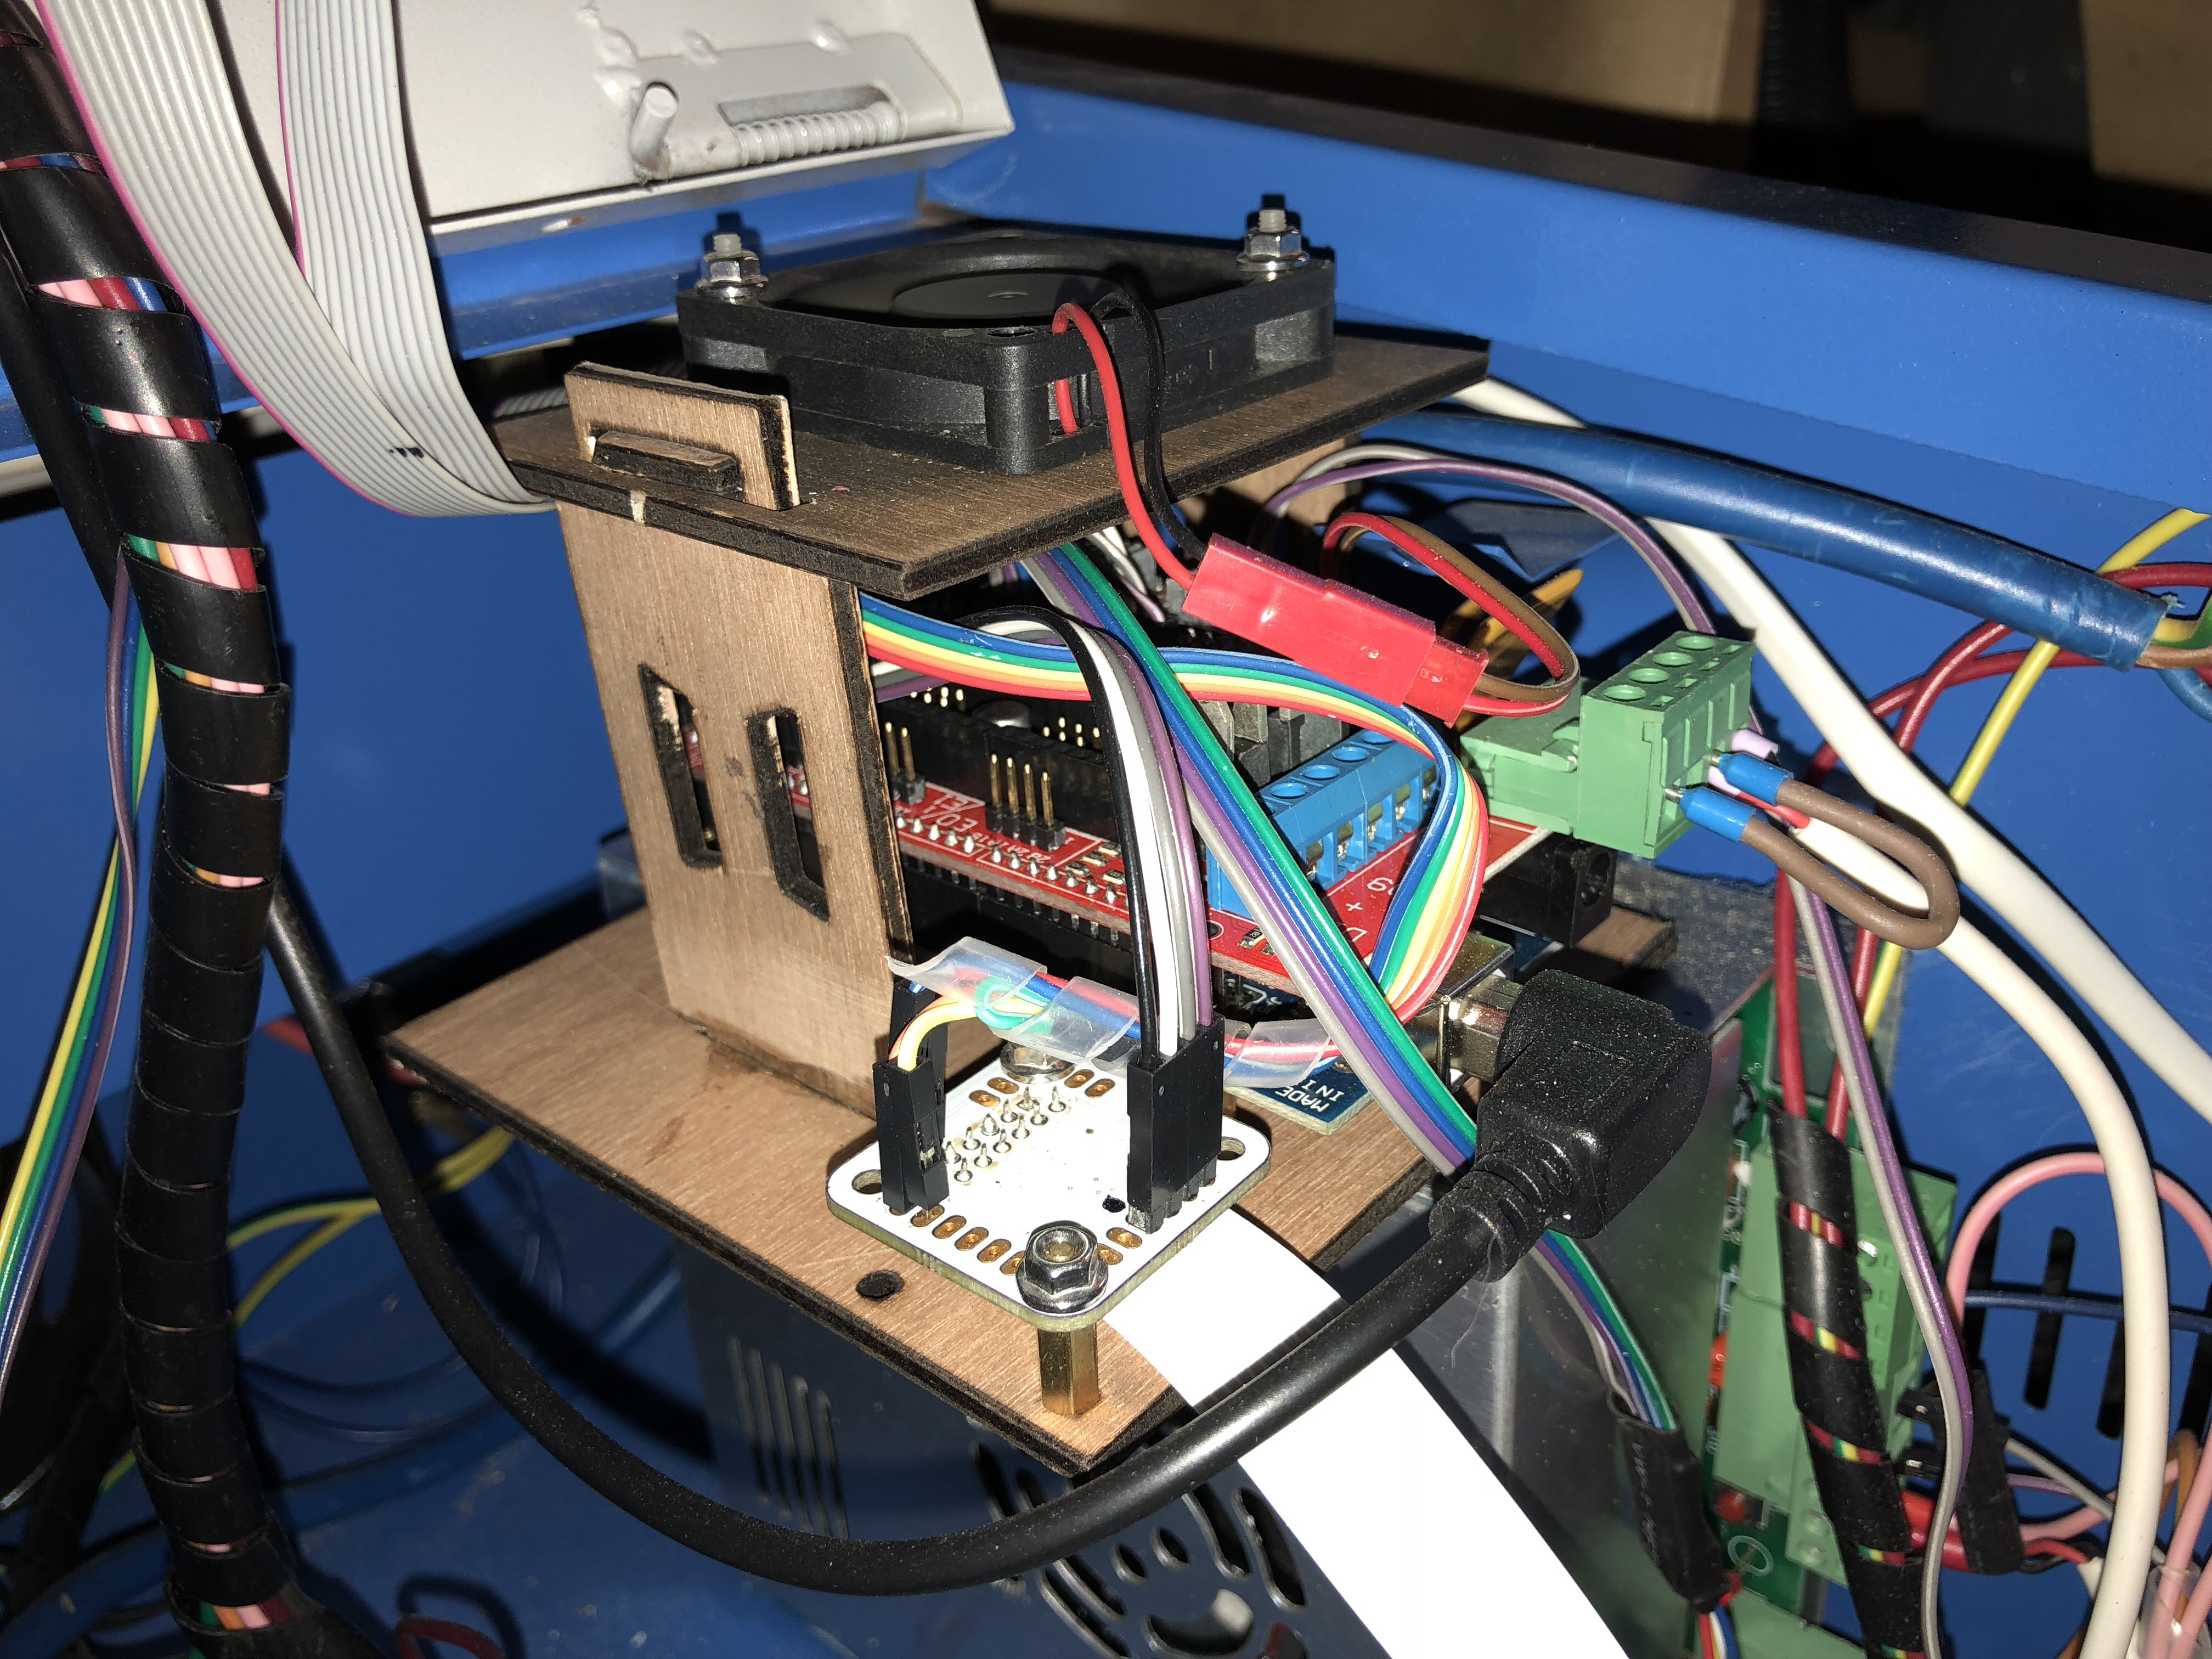 Chinese Laser Cutter K40 Upgrade – Simple Stuff Matters